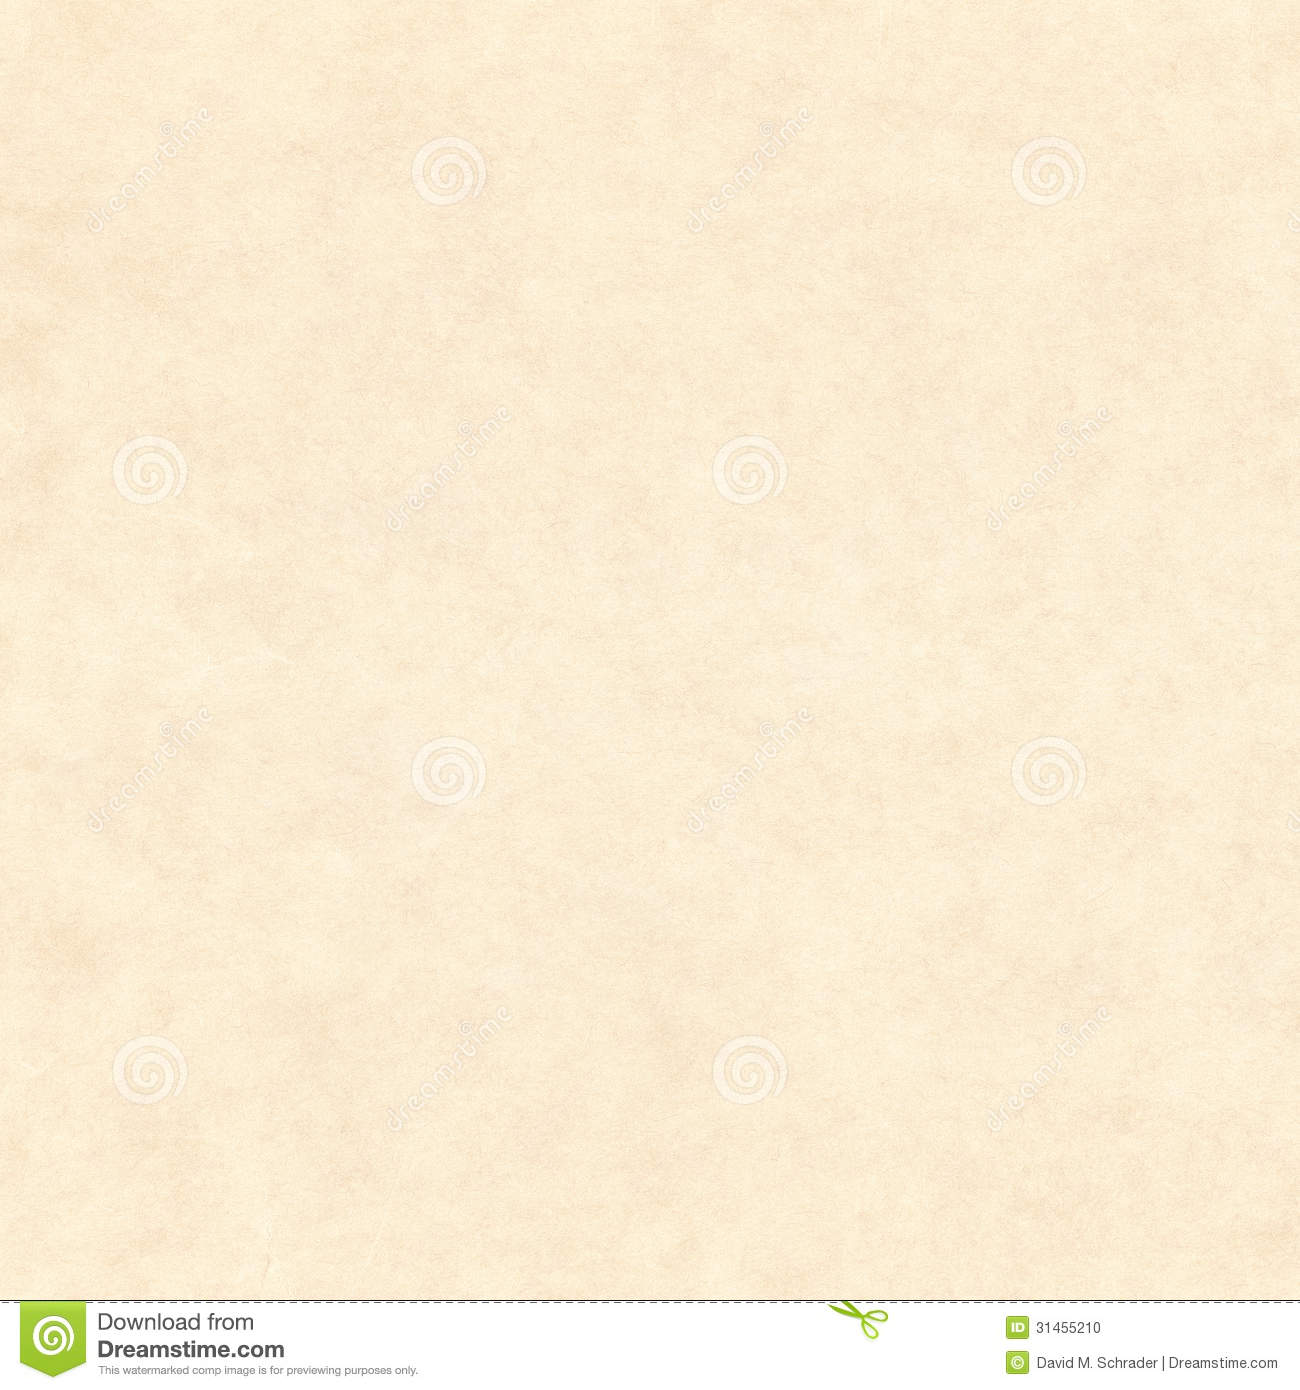 Mottled Off-White Paper Stock Photo - Image: 31455210